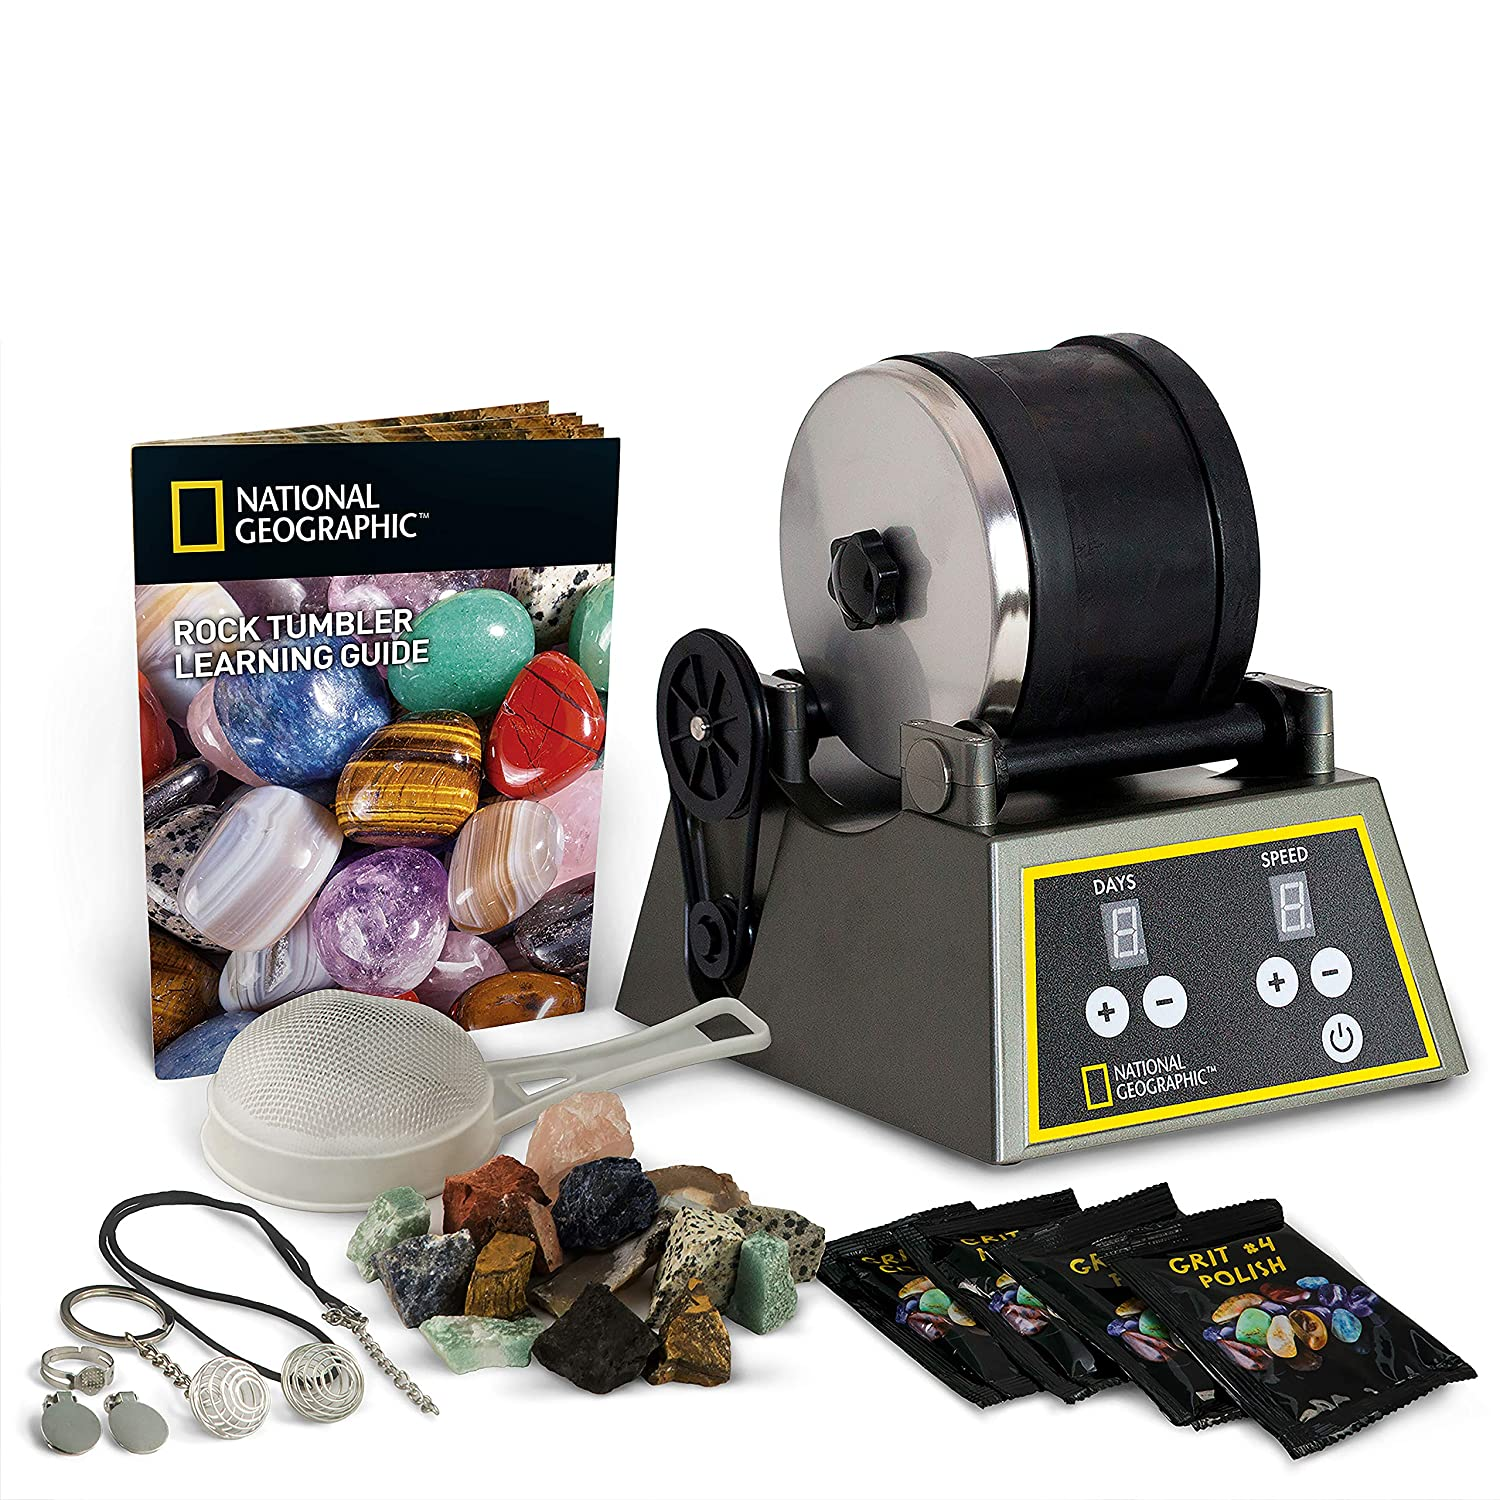 NATIONAL GEOGRAPHIC Professional Rock Tumbler Kit- Advanced features include Shutoff Timer and Speed Control